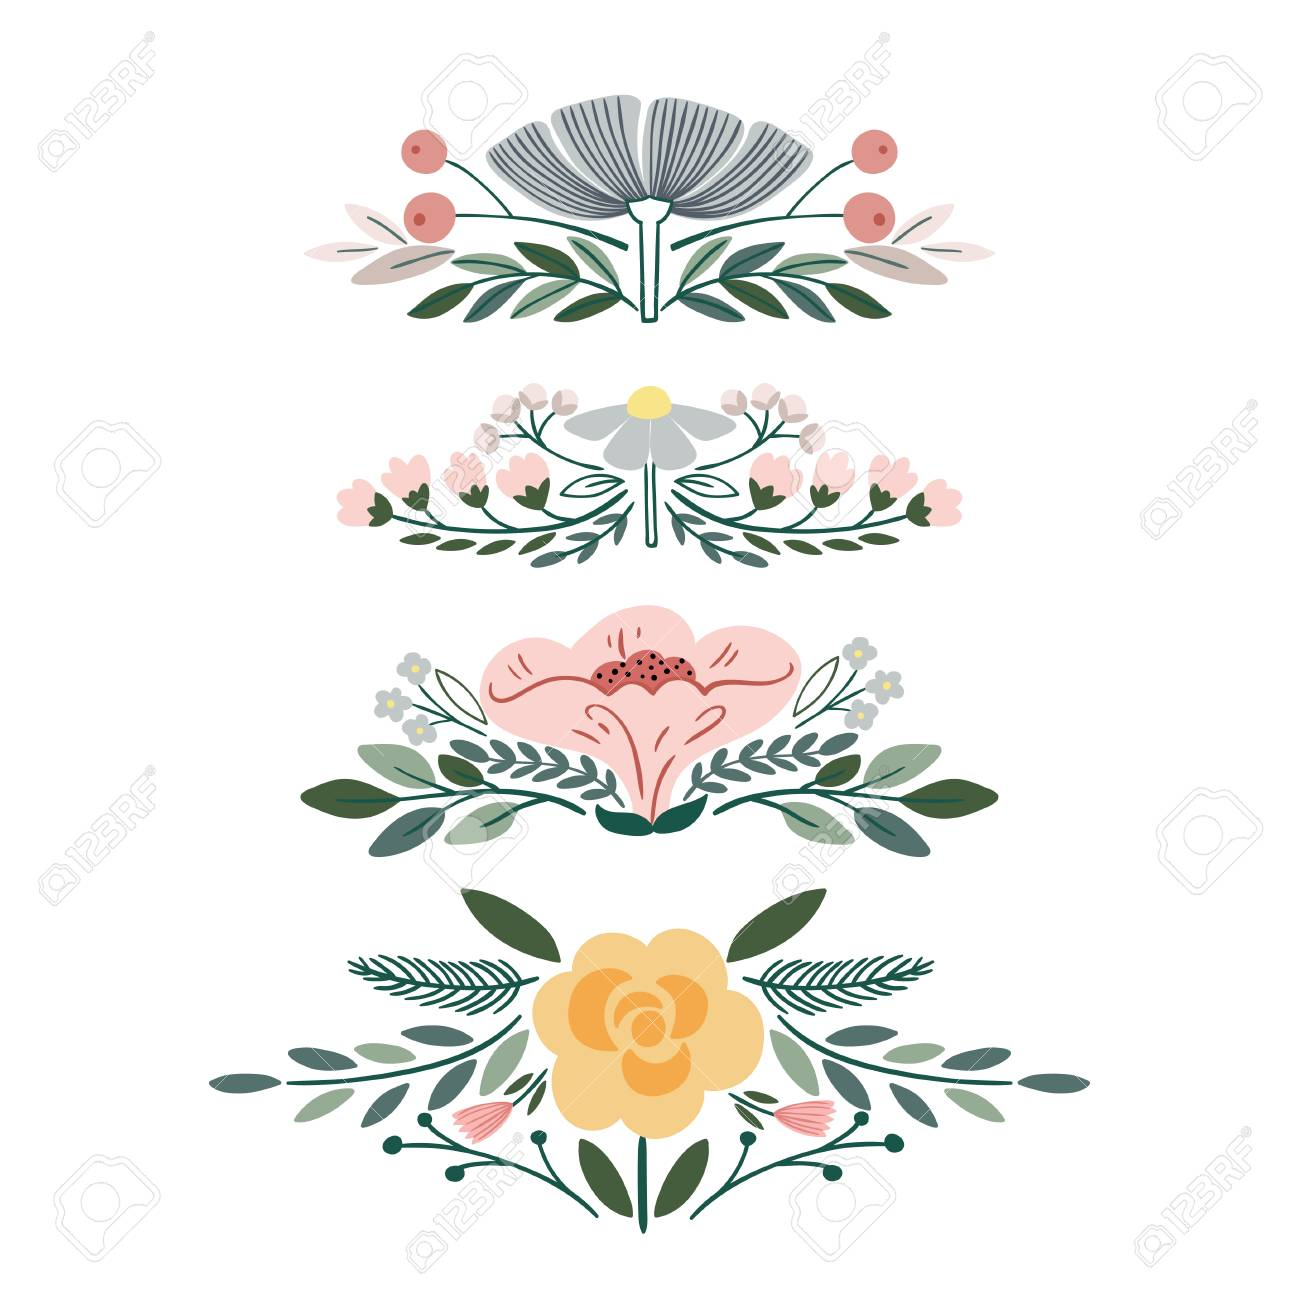 Vector Set With Vintage Flower Bouquets Royalty Free Cliparts ...